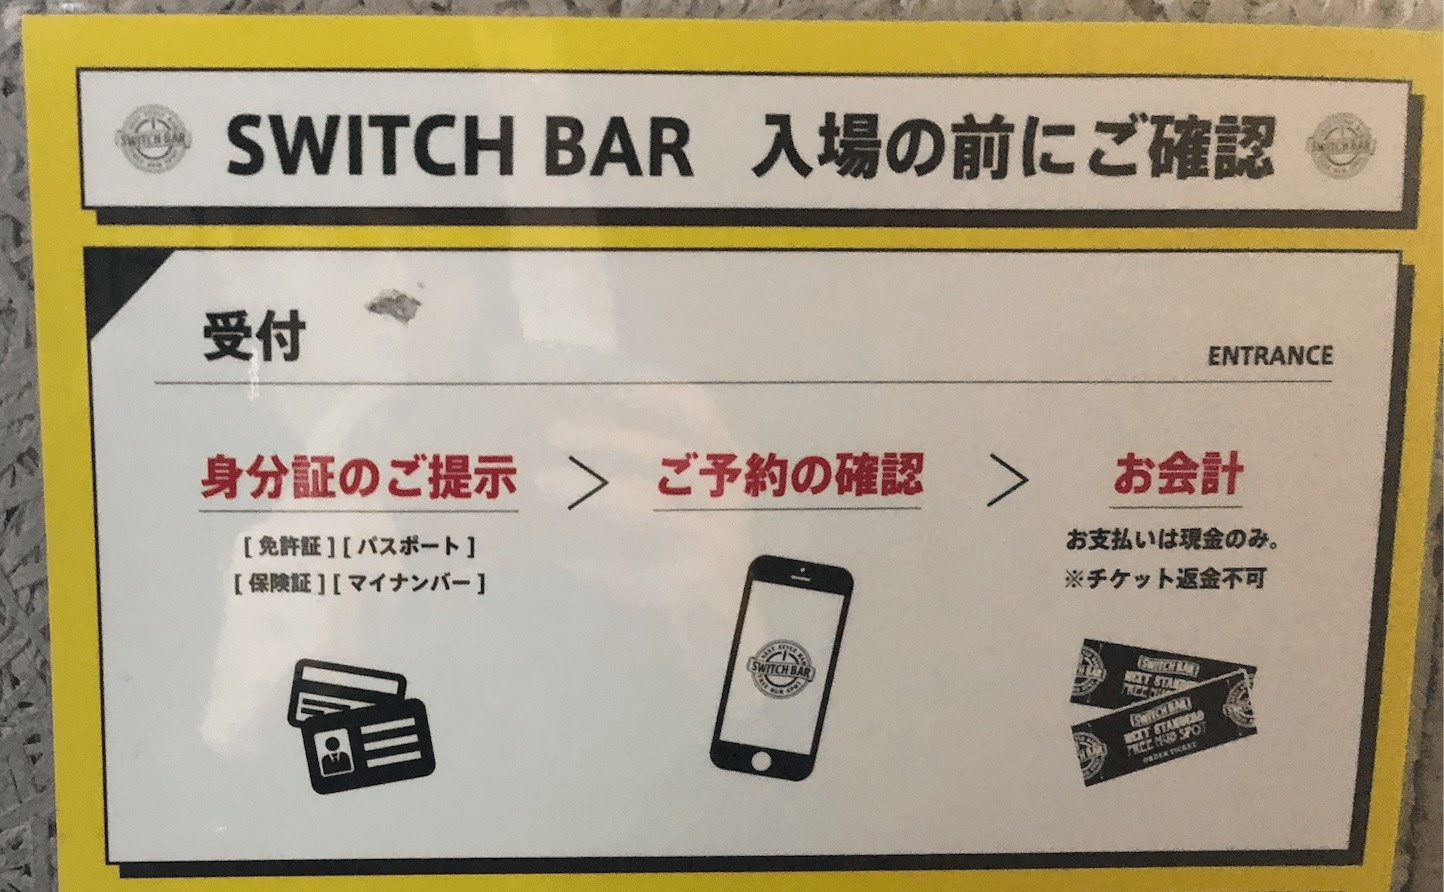 Switch bar Price